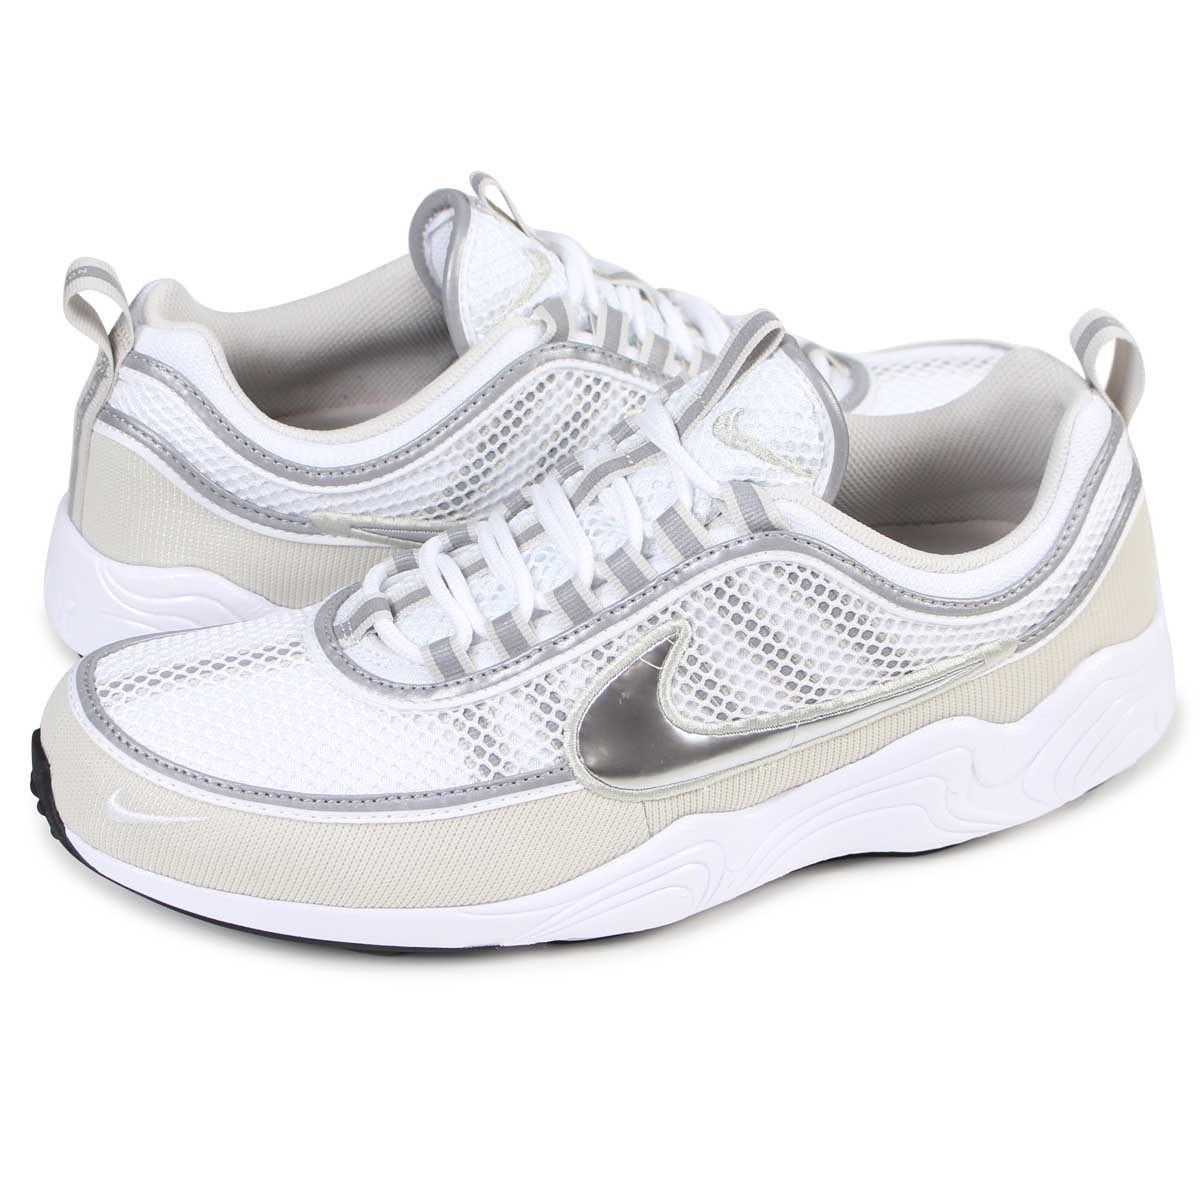 c70a1b792fae5 Whats up Sports  NIKE AIR ZOOM SPIRIDON 16 Nike air zoom pyridone sneakers  men 926